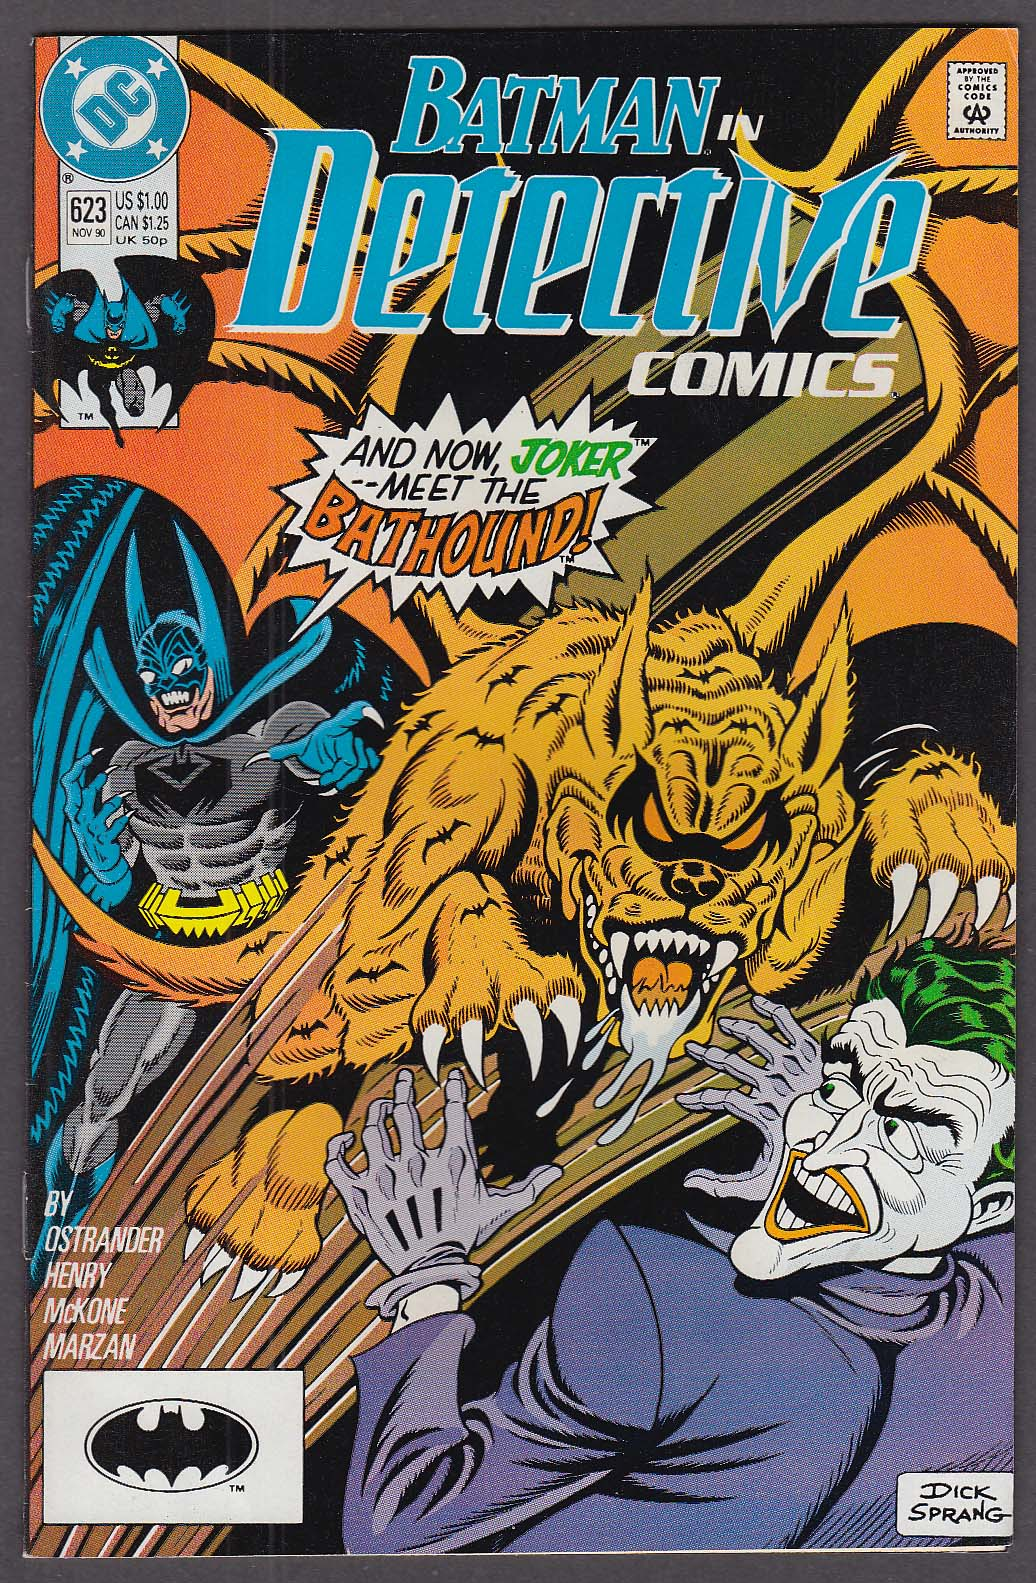 DETECTIVE COMICS #623 DC comic book 11 1990 Batman